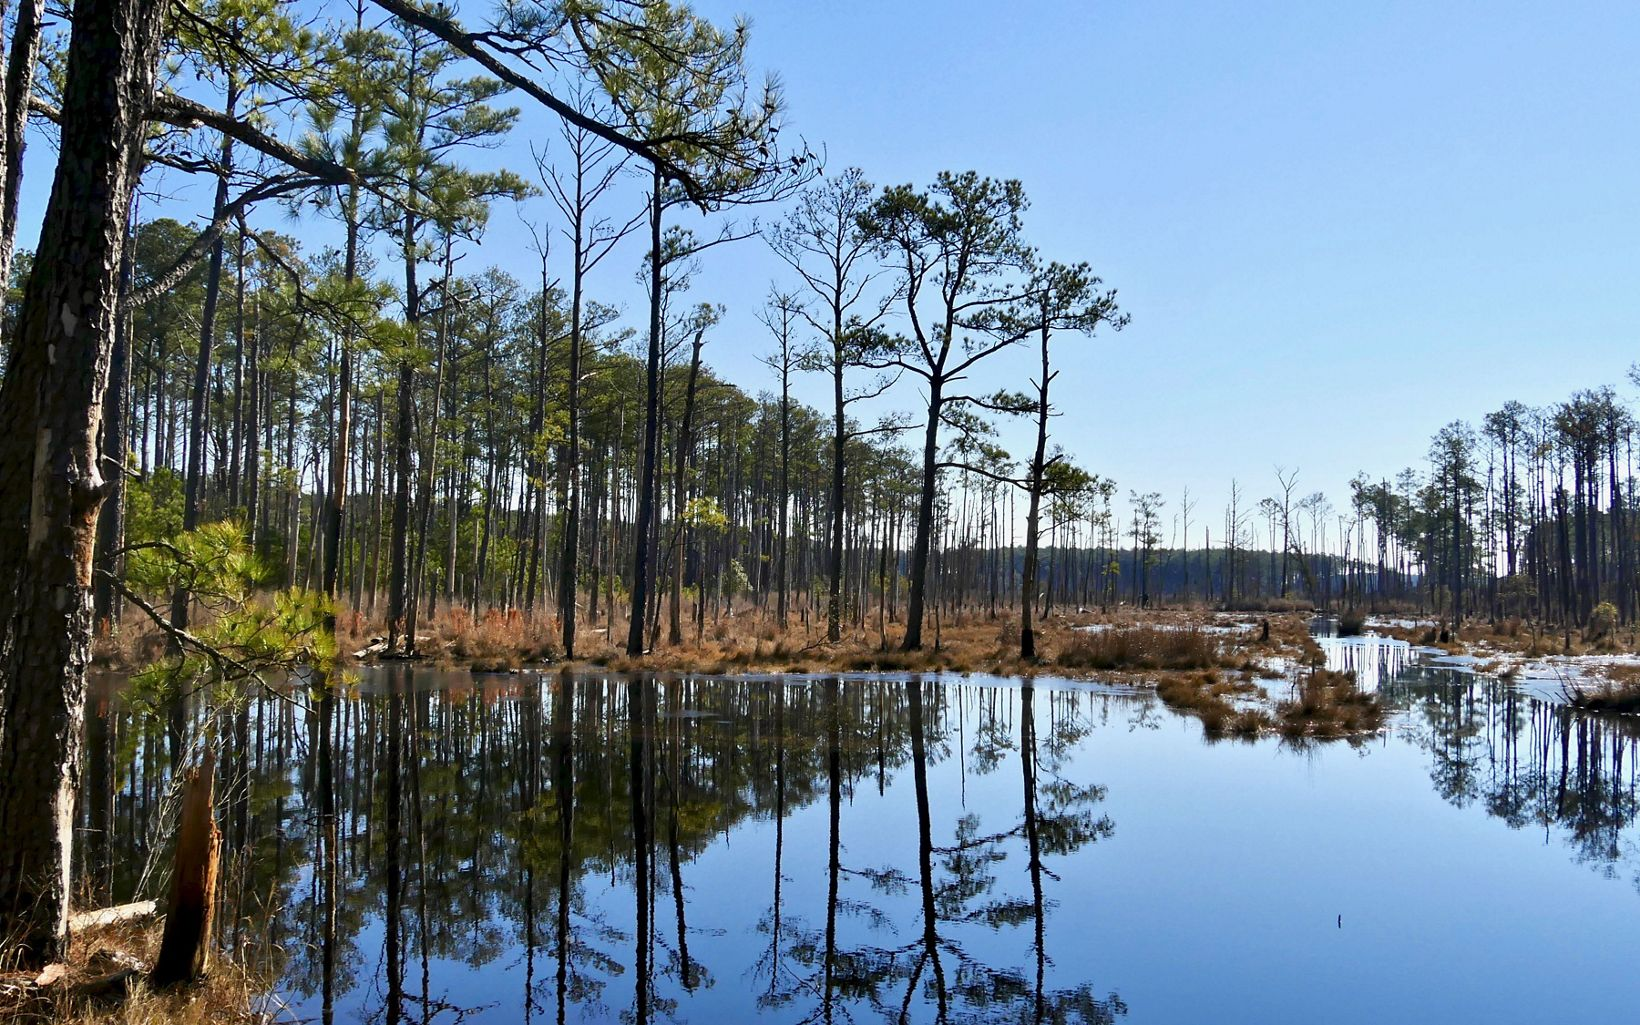 As the preserve and other places around the Chesapeake Bay gradually transform, local communities face tough decisions about how best to preserve the region's history.